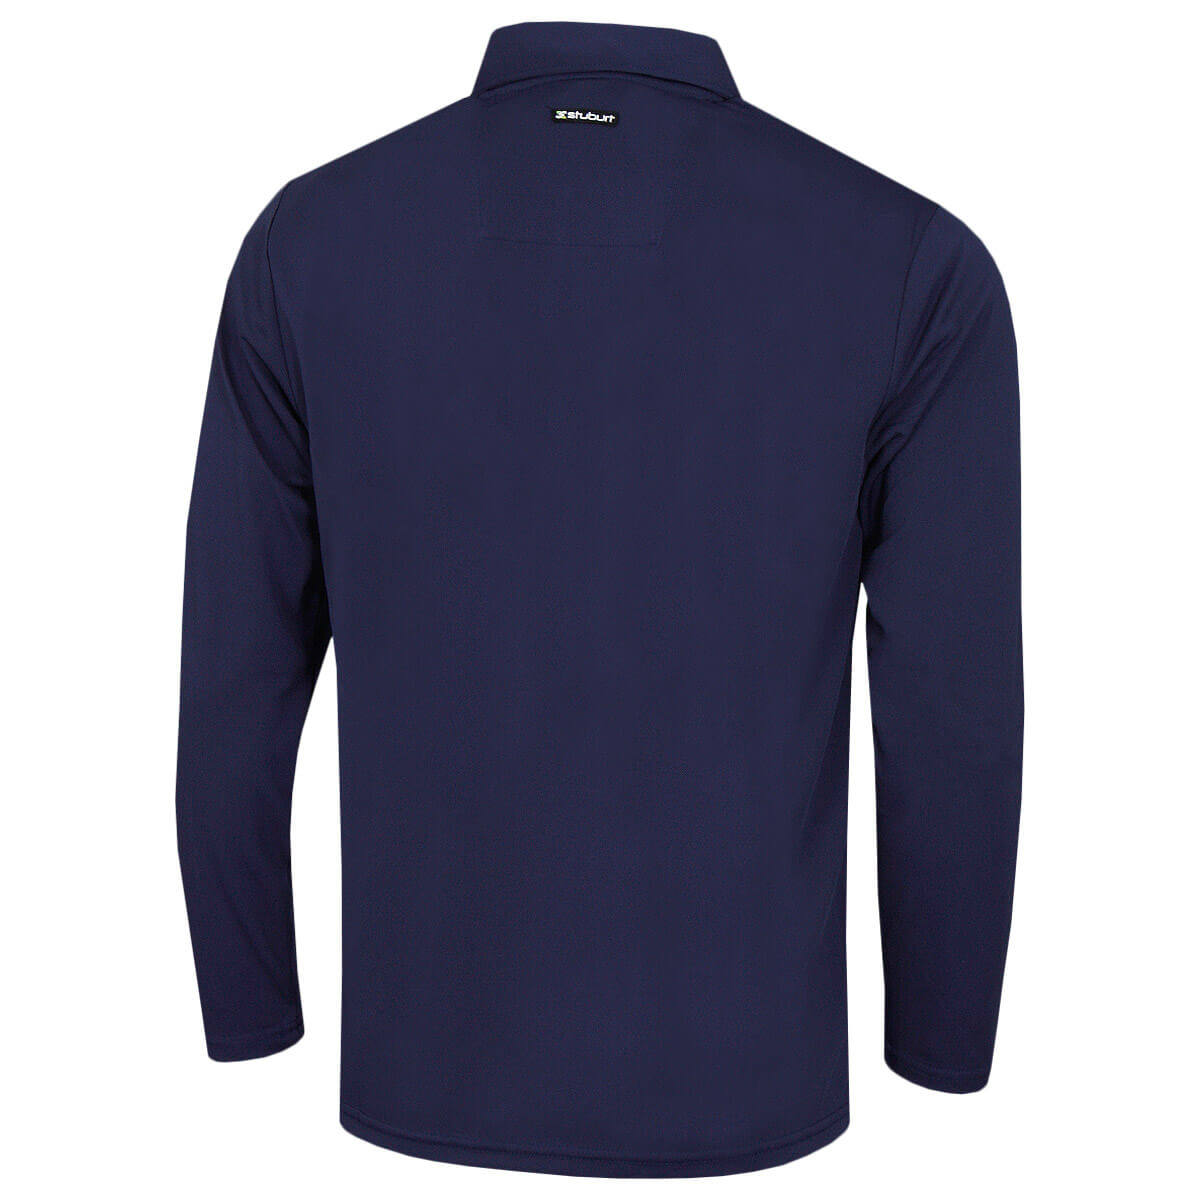 Stuburt-Mens-Urban-Long-Sleeve-Wicking-Breathable-Golf-Polo-Shirt-33-OFF-RRP thumbnail 14